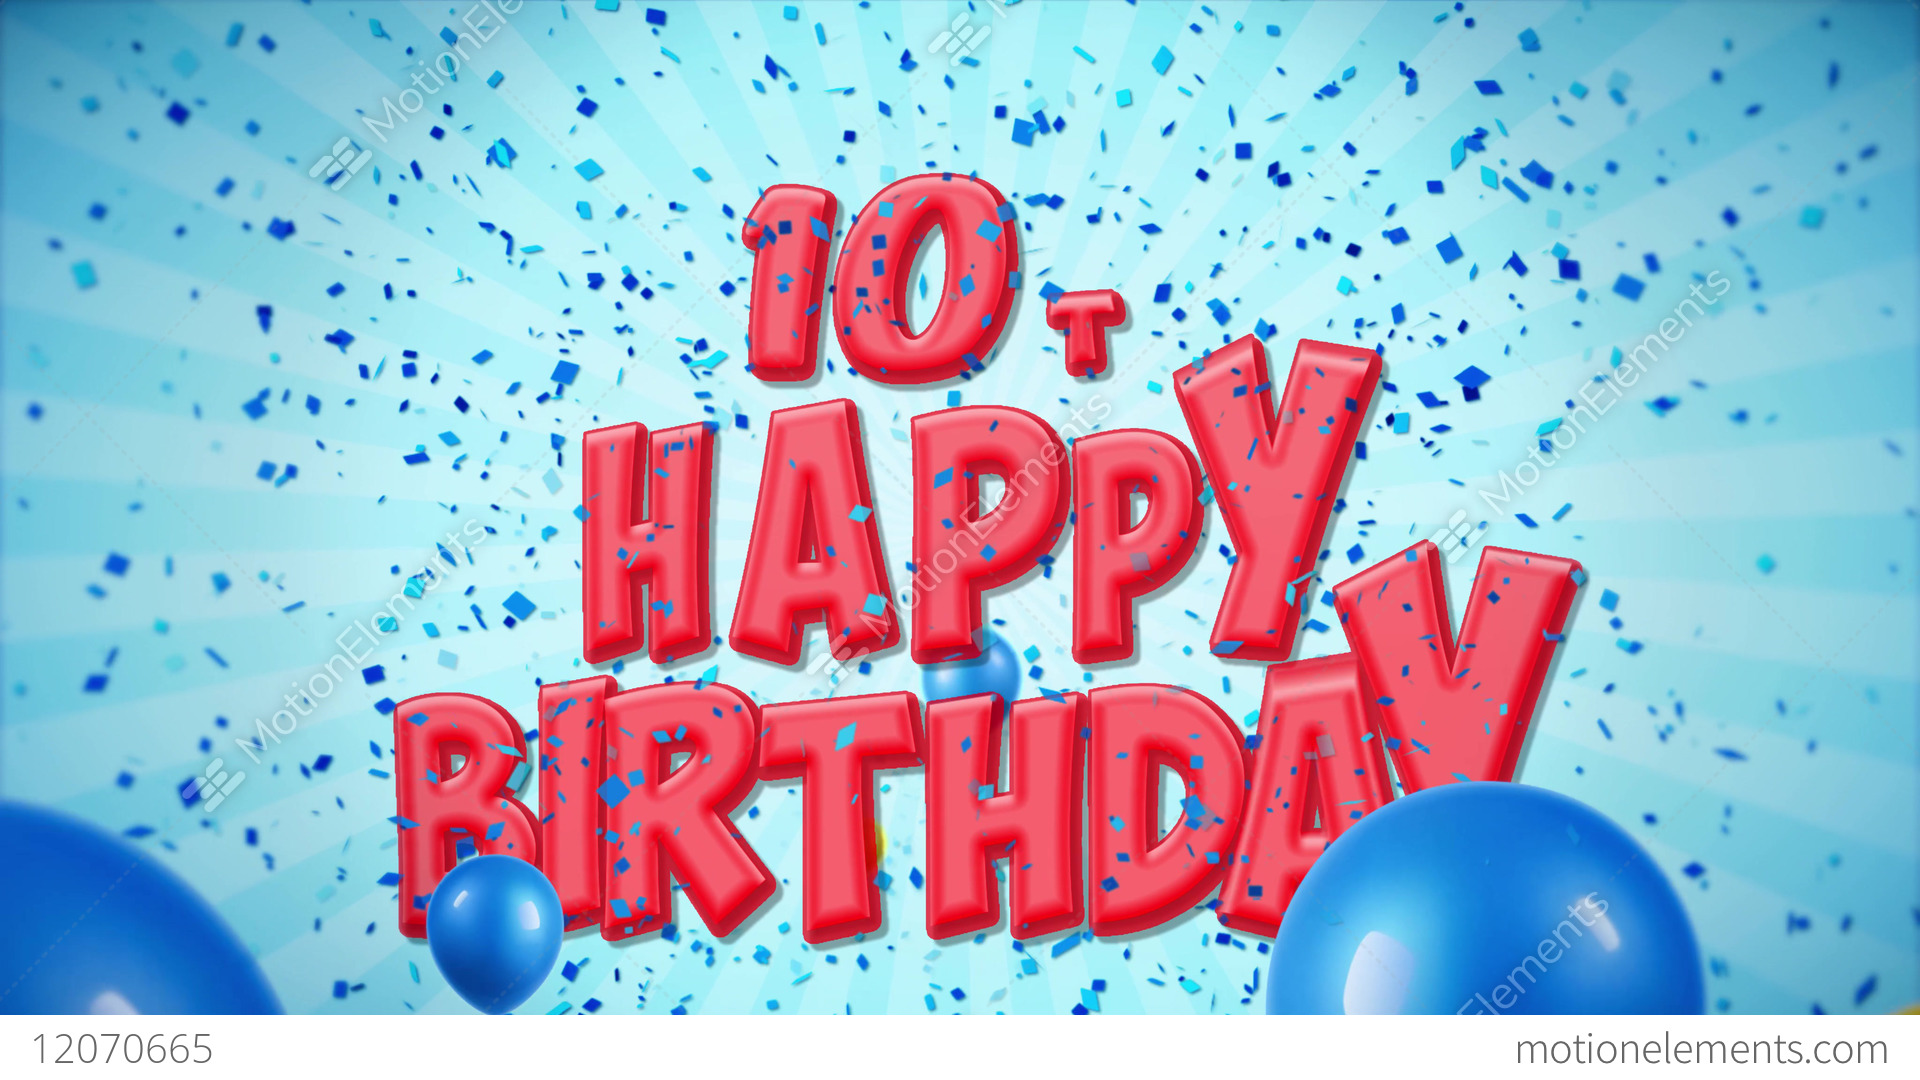 10th Happy Birthday Greeting And Wishes On Balloons Stock Video Footage